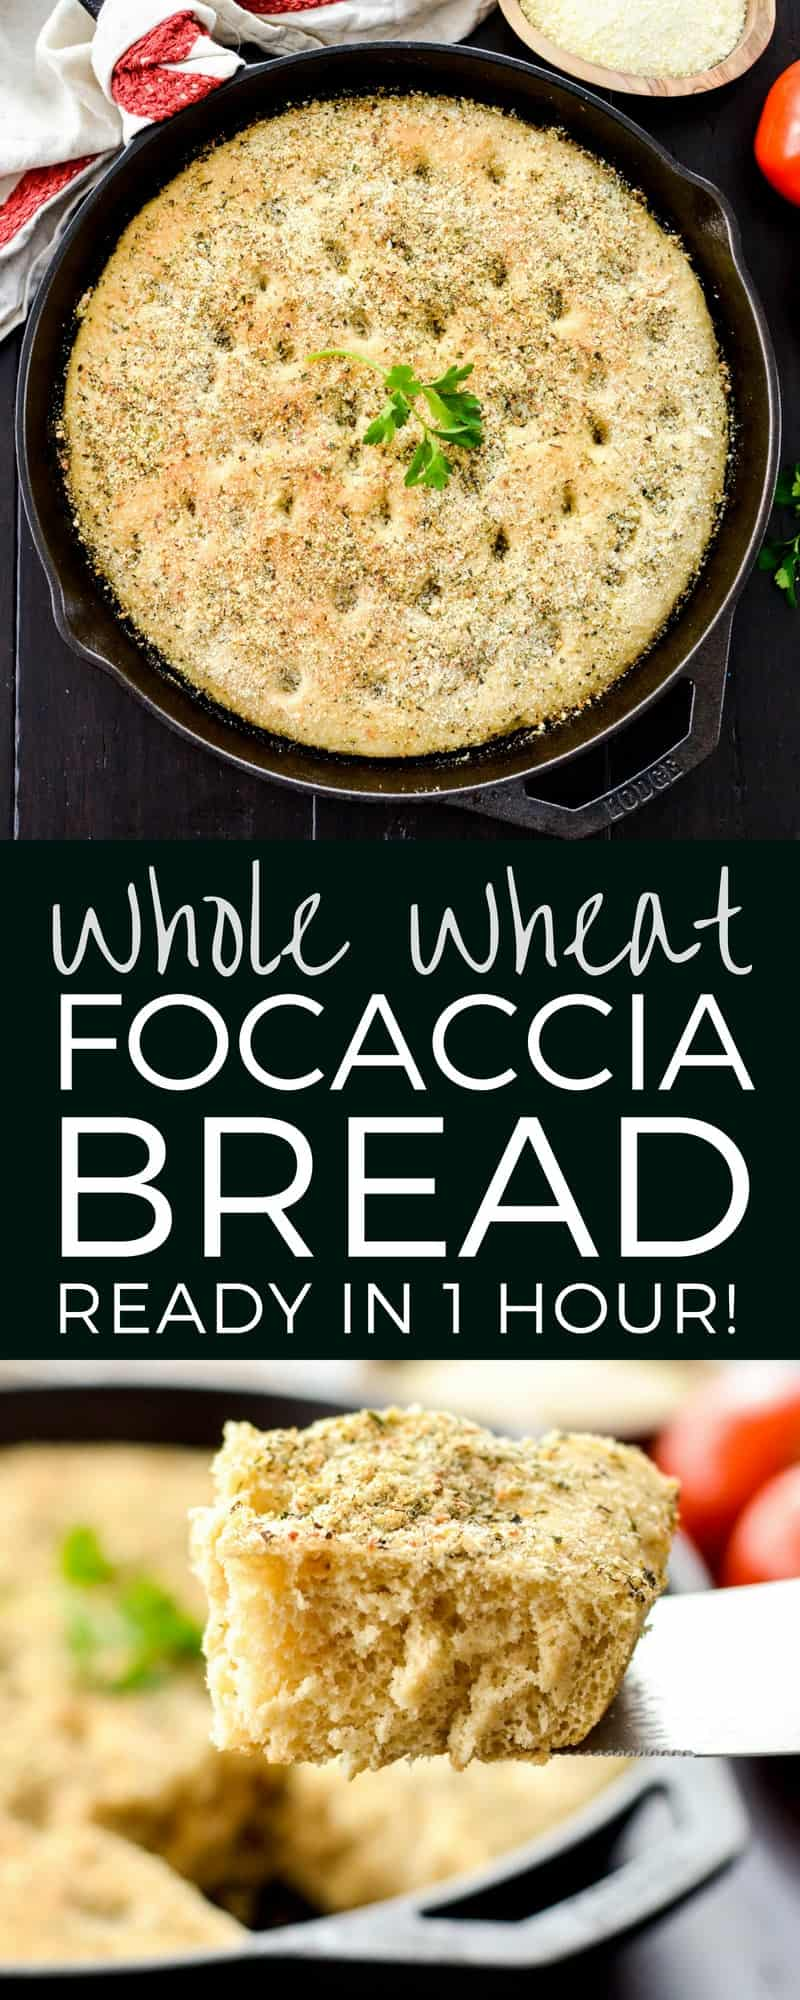 This Whole Wheat Focaccia Bread Recipe is ready in 1 hour flat! An easy, delicious bread recipe that is the perfect side dish to any meal! #homemadebread #focacciabread #recipe #wholewheat